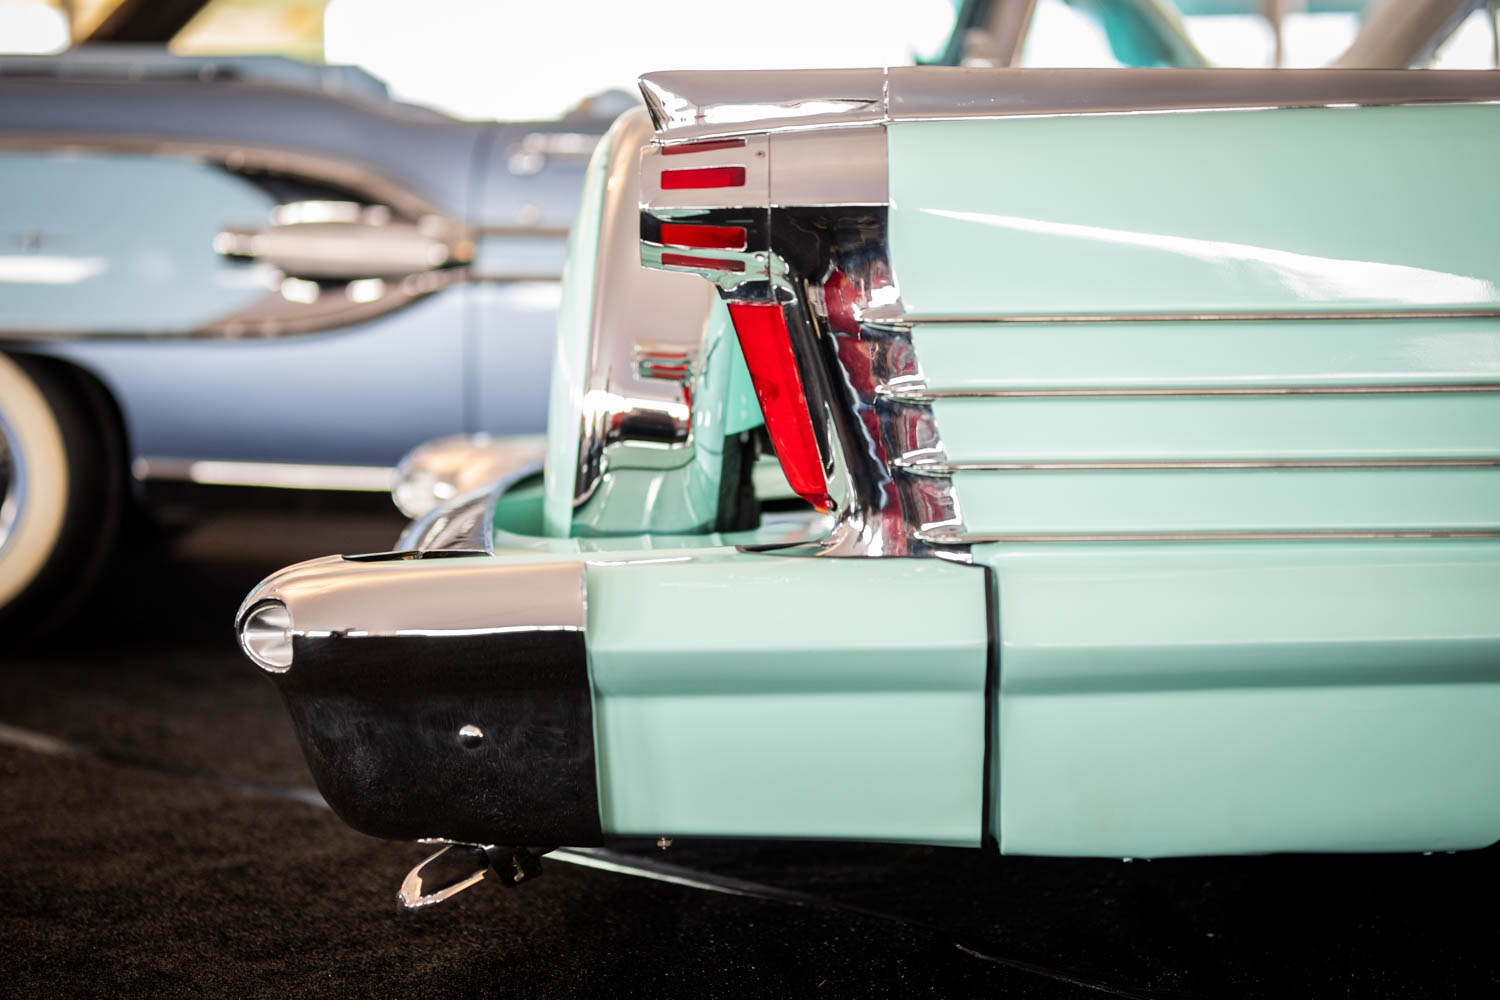 1958 Olds Super 88 Convertible